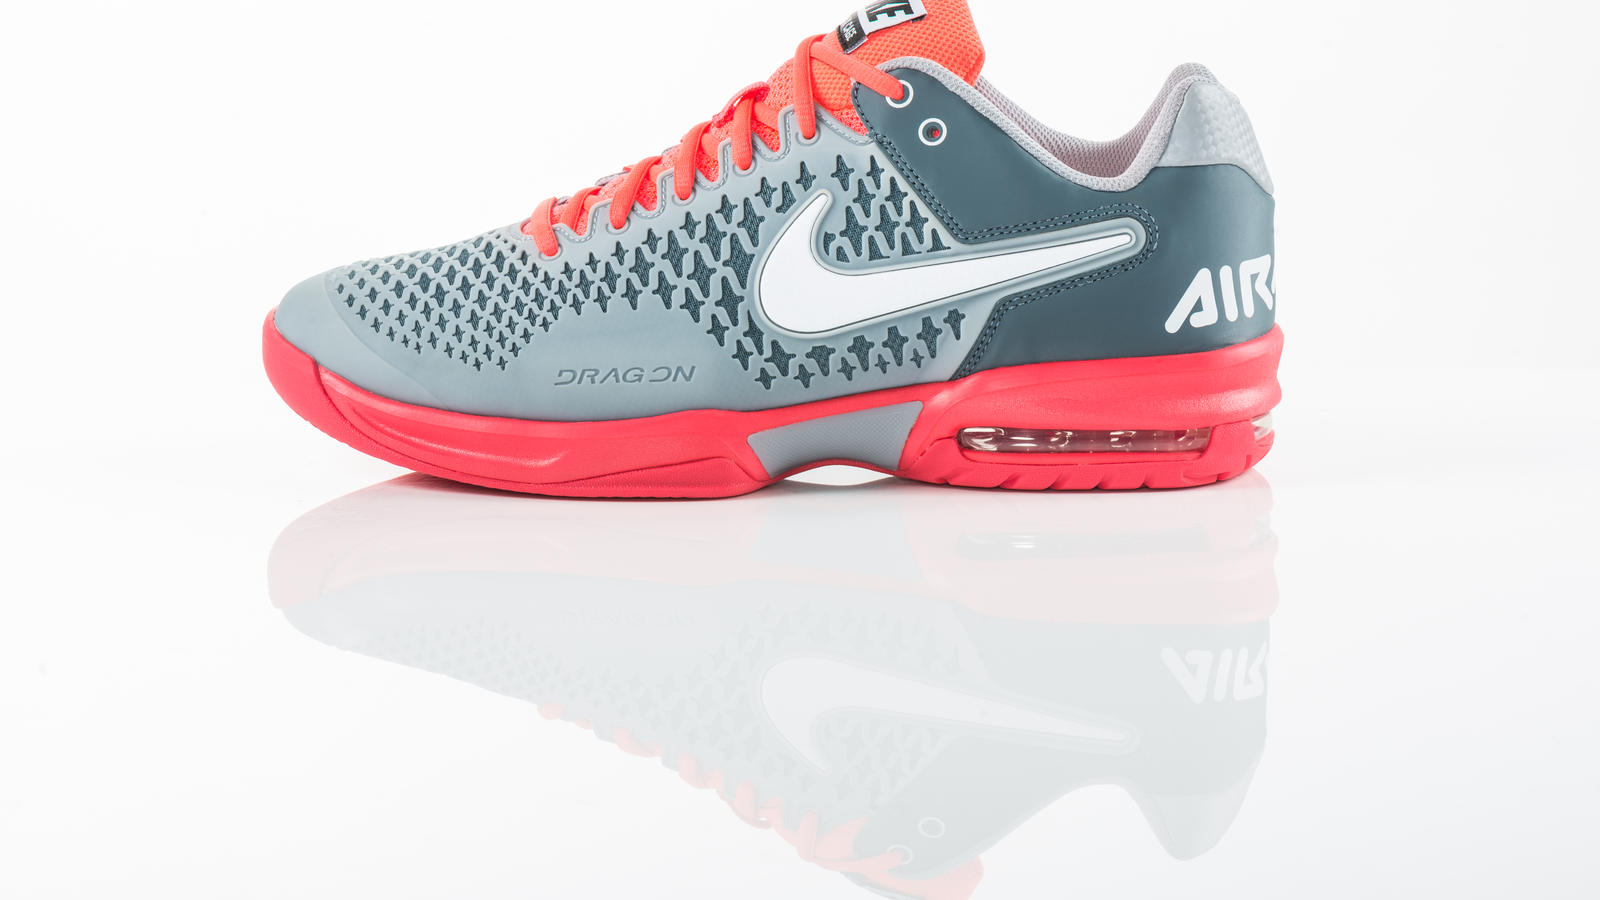 Nike Tennis unveils lightweight, durable Air Max Cage Nike